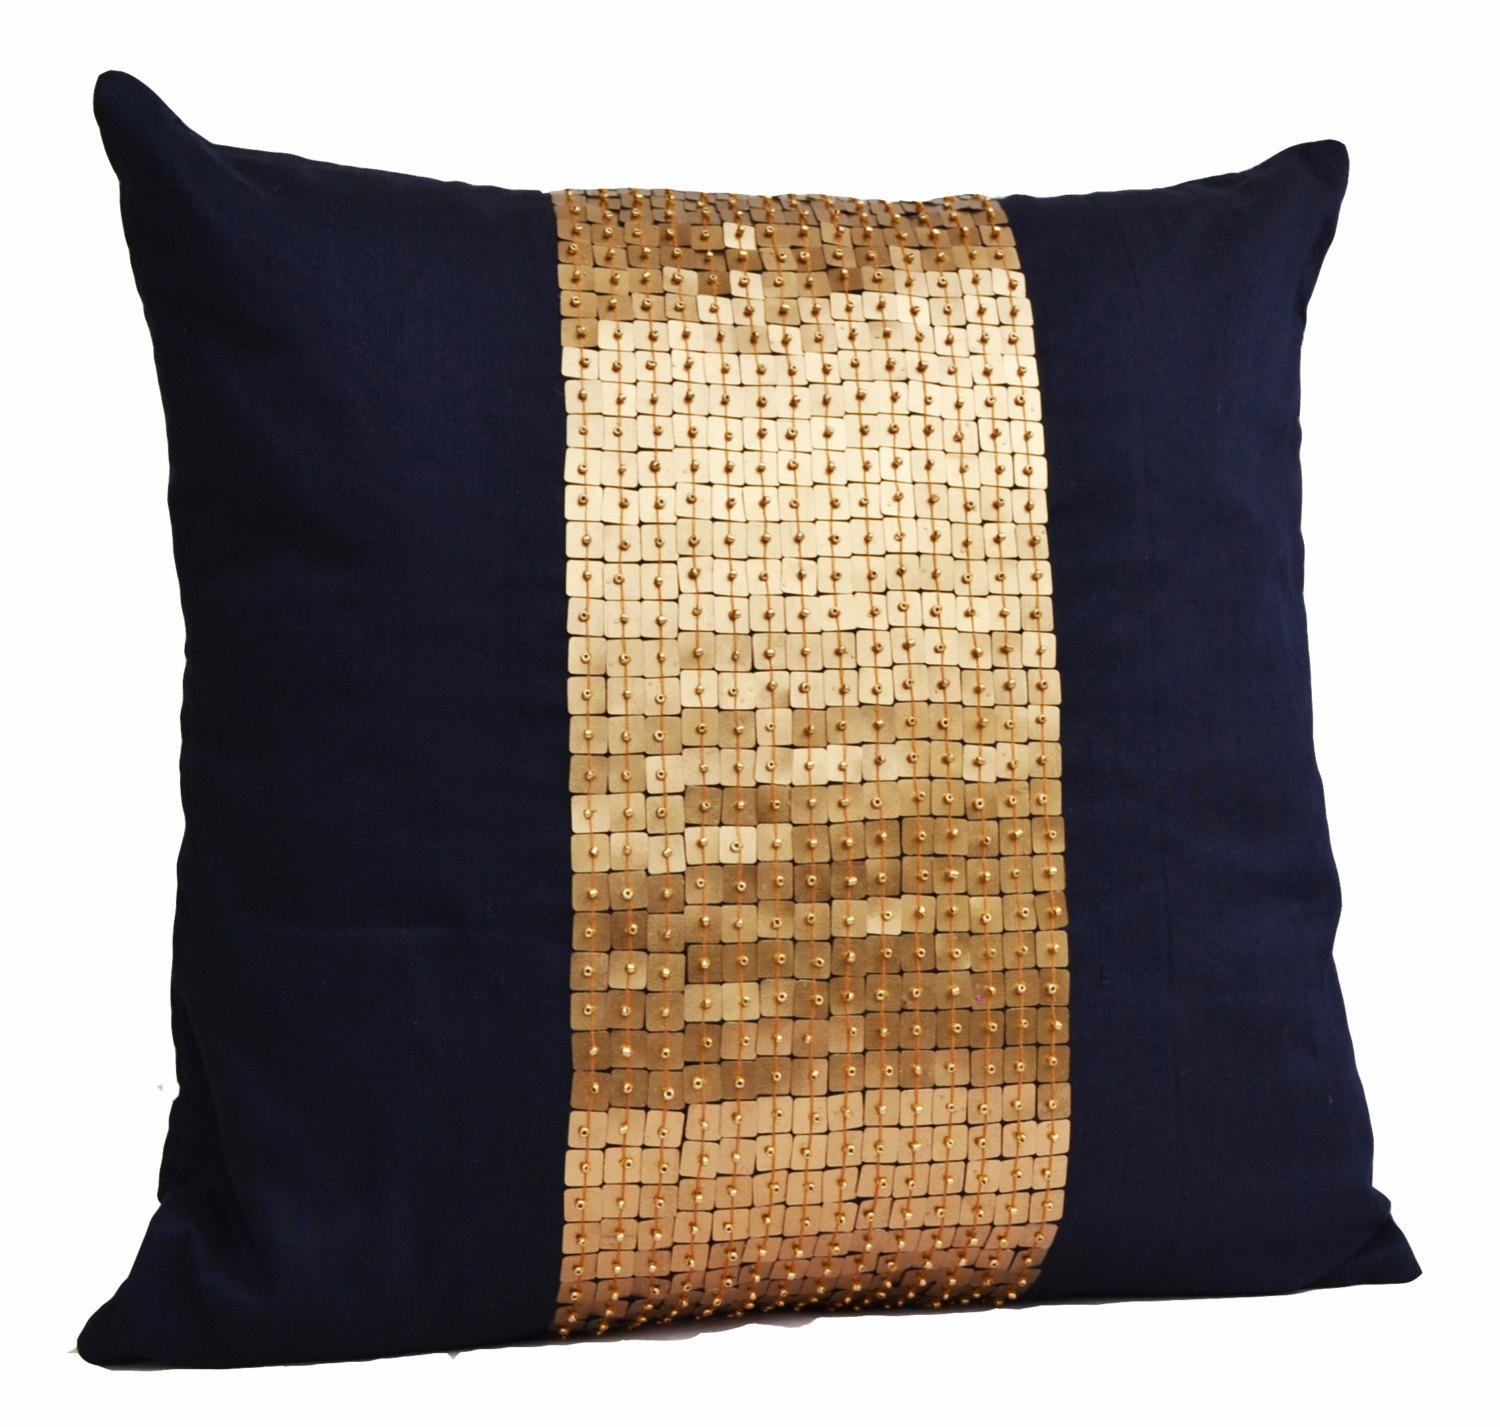 Decorative Pillows With Beads : Pillows With Beads Inside Motavera.com